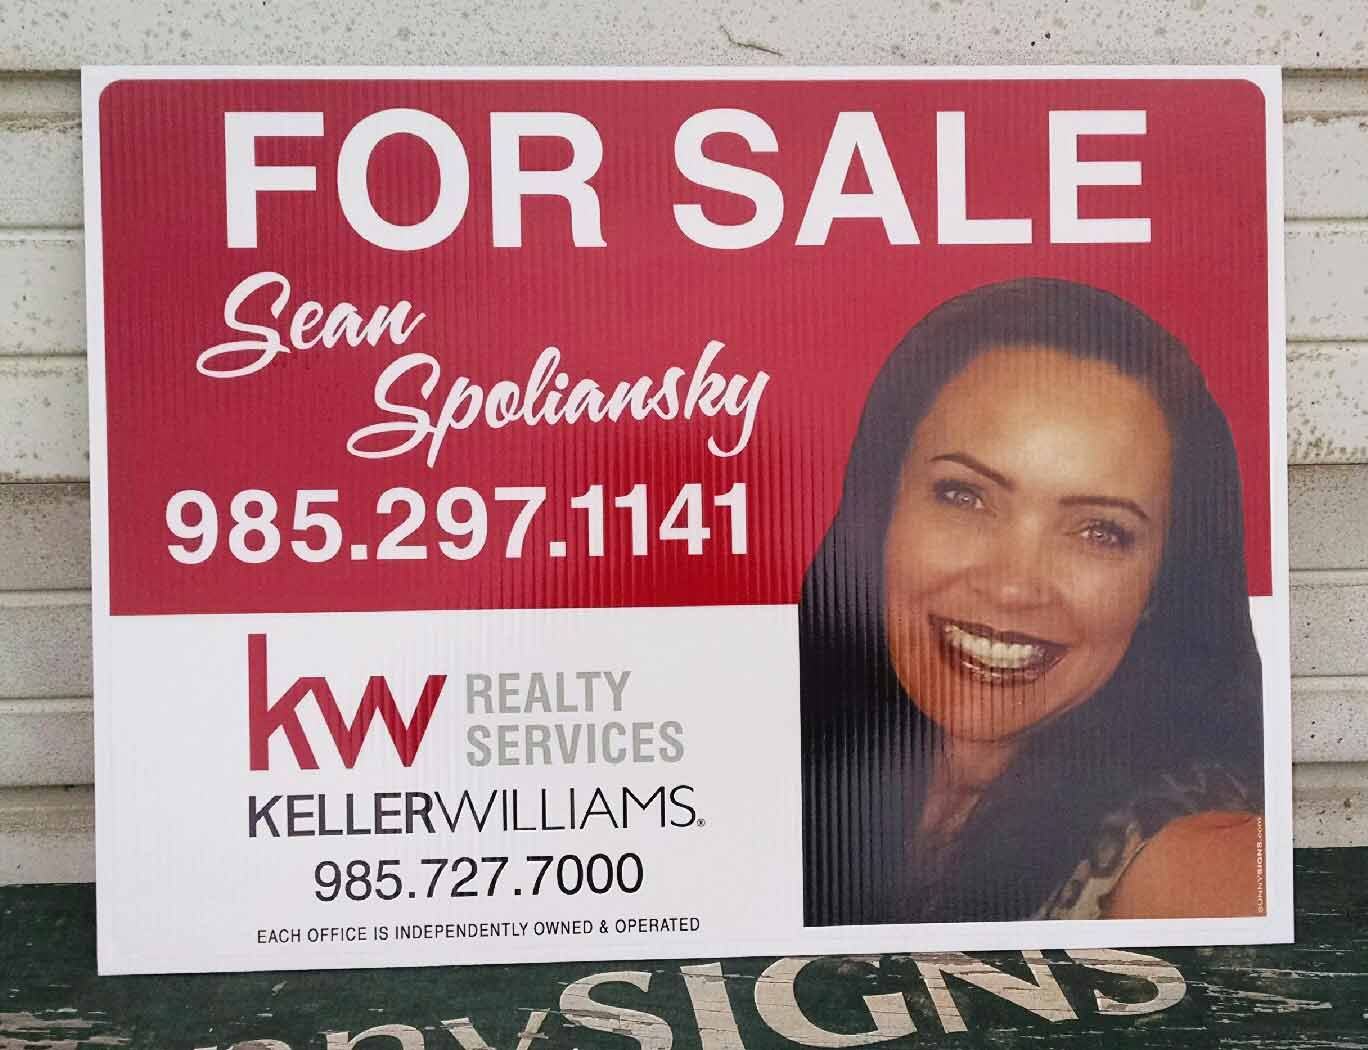 Keller Williams sign